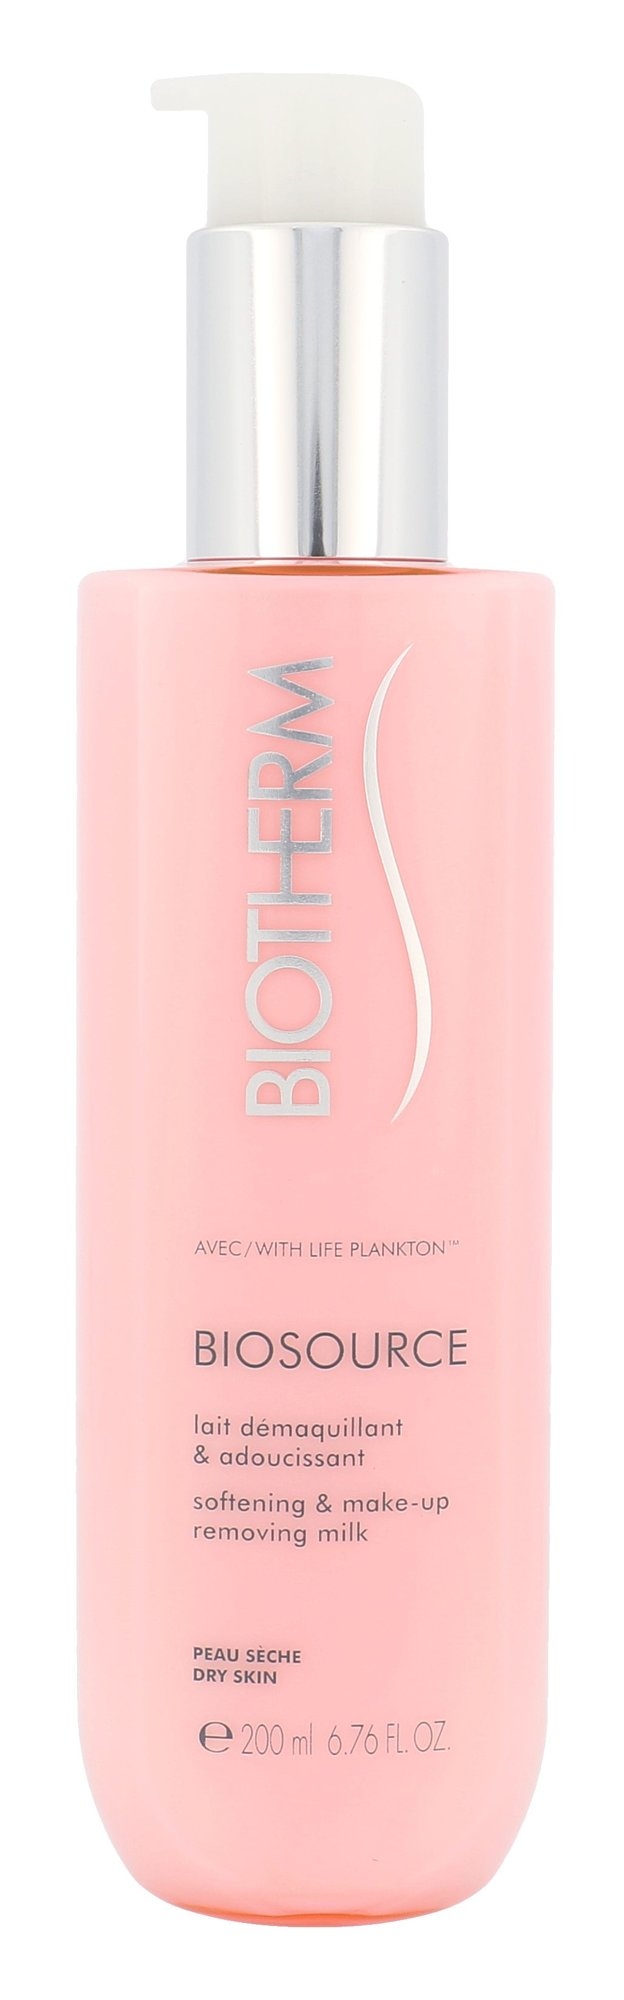 Biotherm Biosource Cleansing Milk 200ml